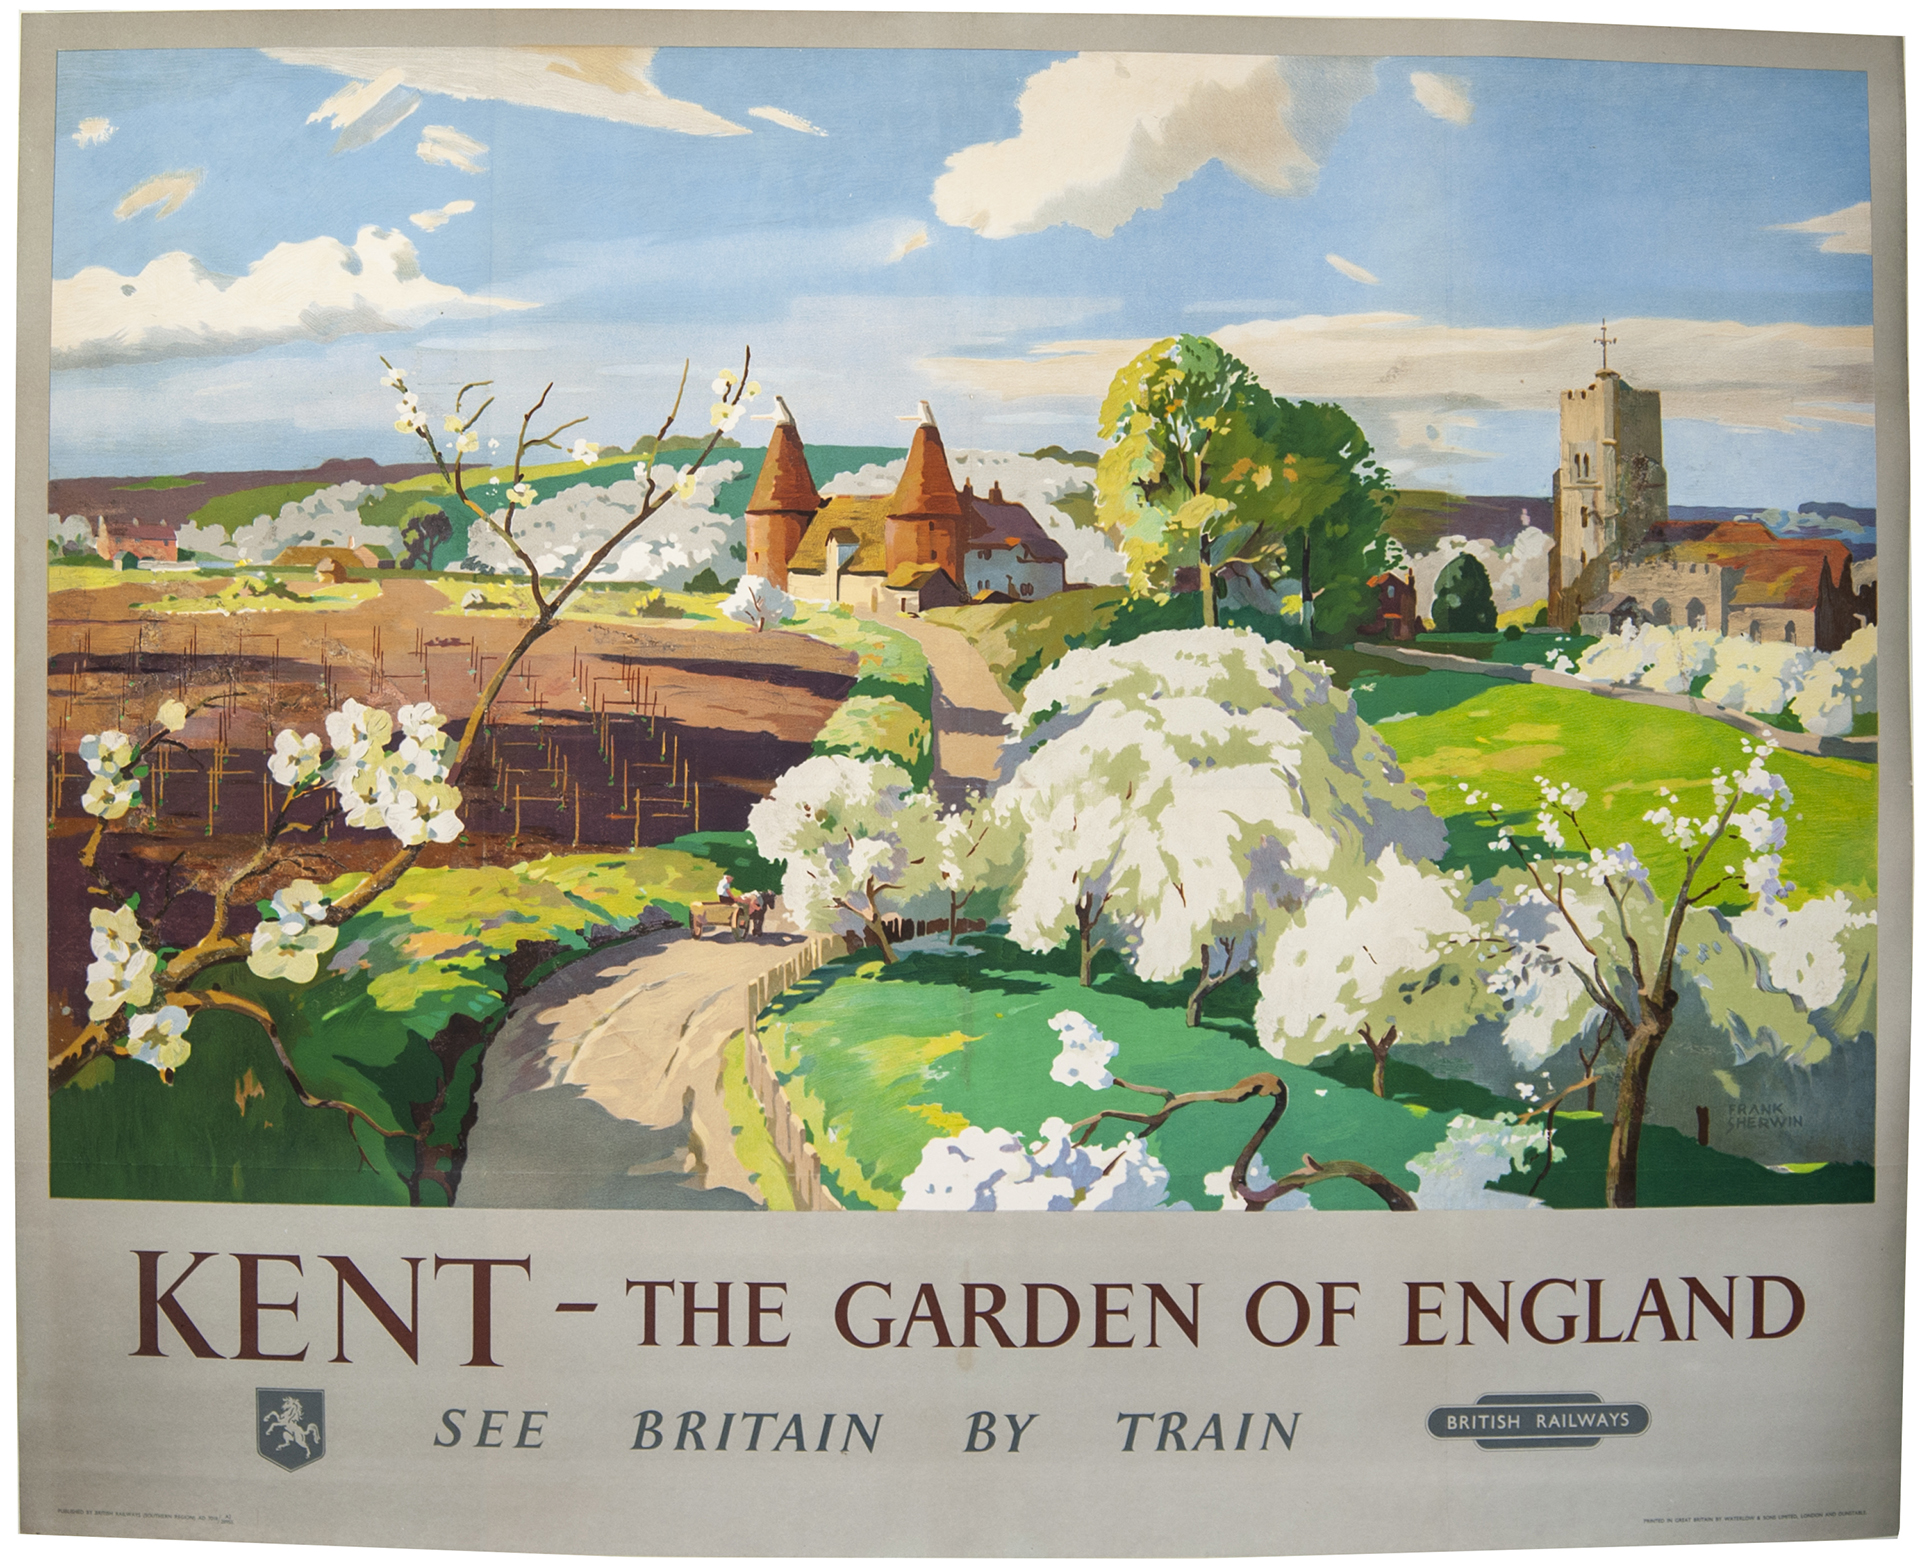 Poster BR(S) KENT THE GARDEN OF ENGLAND by Frank Sherwin issued in 1955. Quad Royal 50in x 40in.